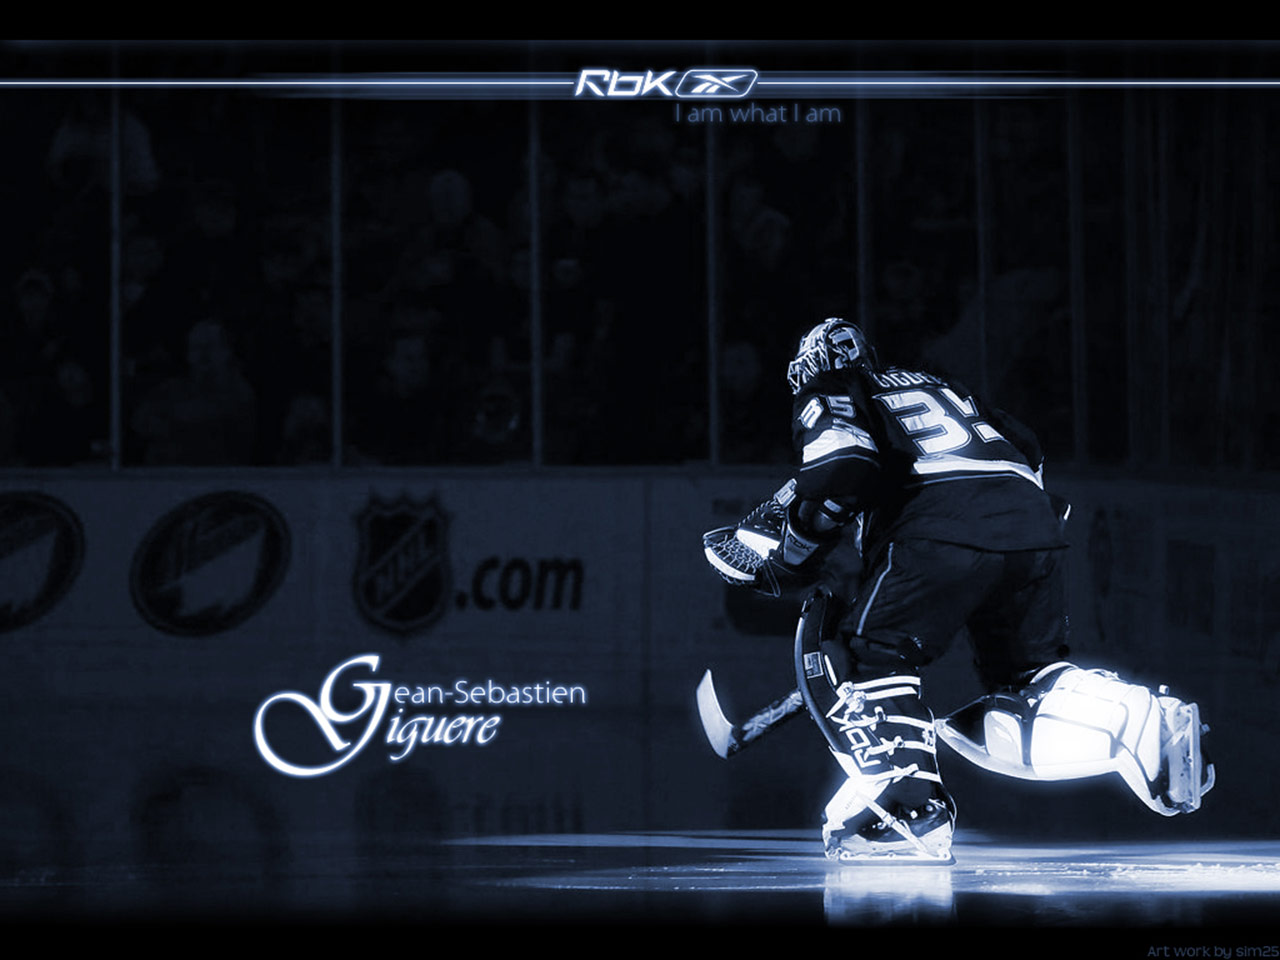 http://1.bp.blogspot.com/-hGhFJbUuy6s/TmS9Savhk2I/AAAAAAAAAdo/8gB94MjVVdE/s1600/Hockey-Wallpapers-.jpg